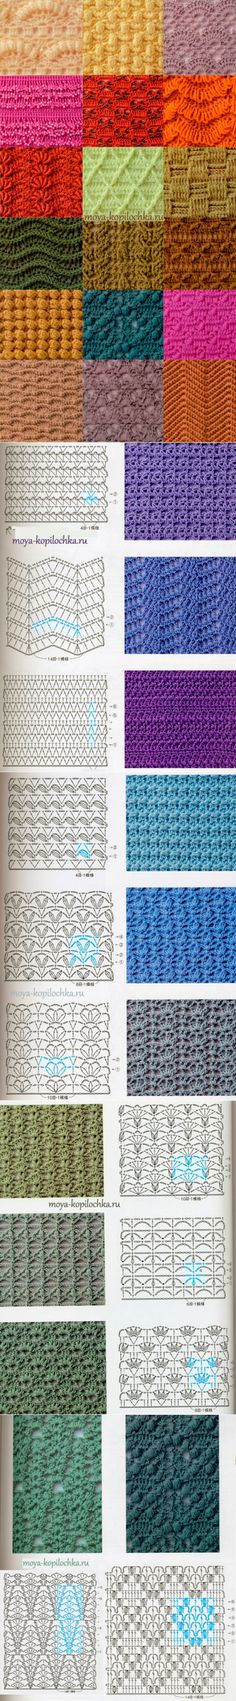 98 patterns and motifs crocheted - Knitting - My dowel